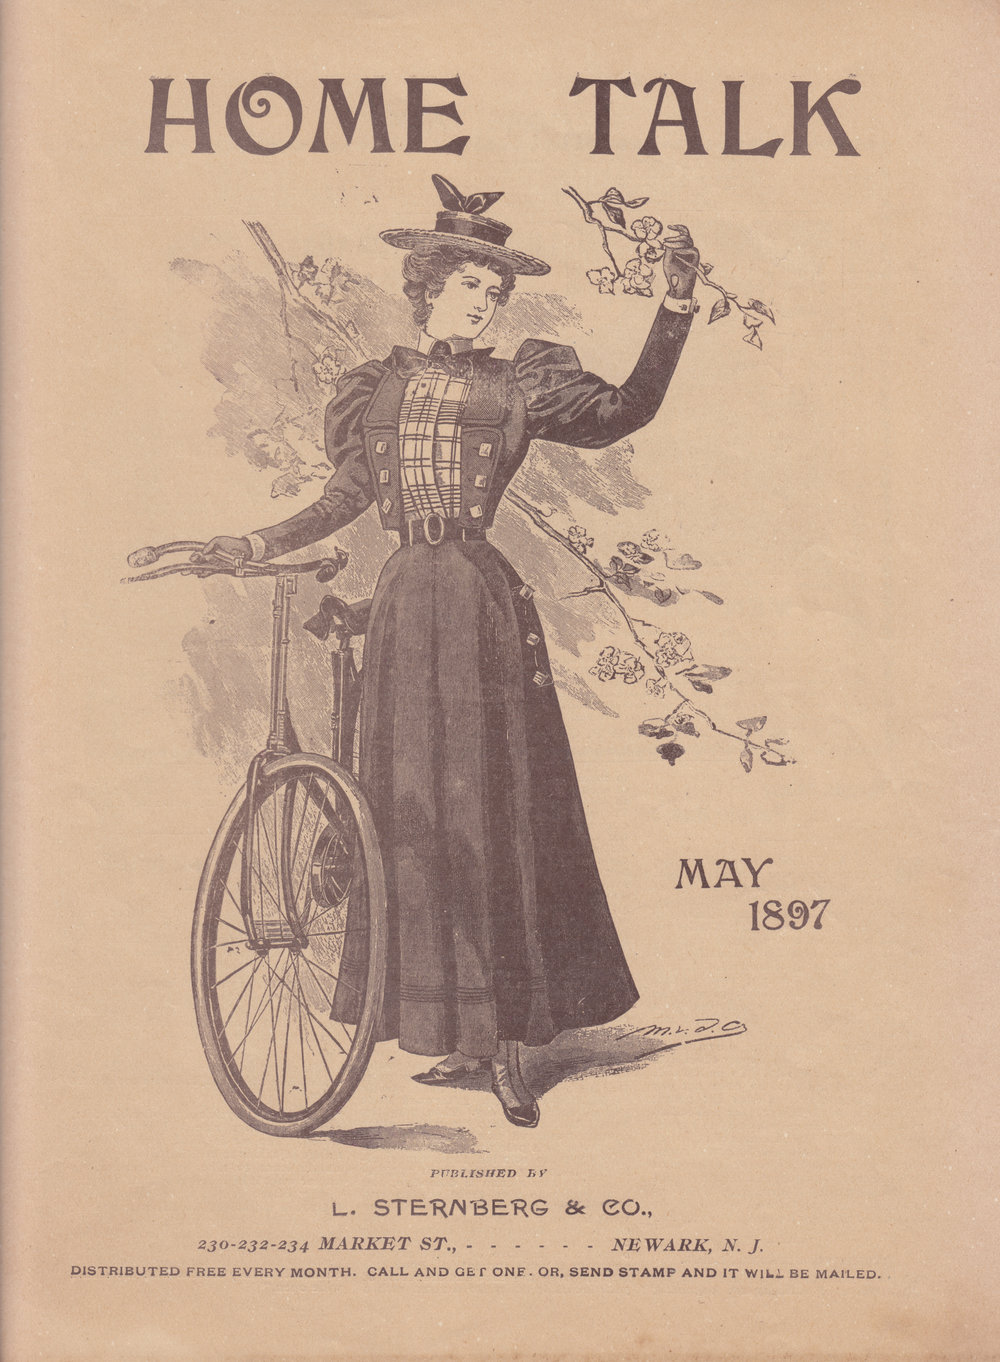 Illustration of fashionable woman and bicycle, May 1897.